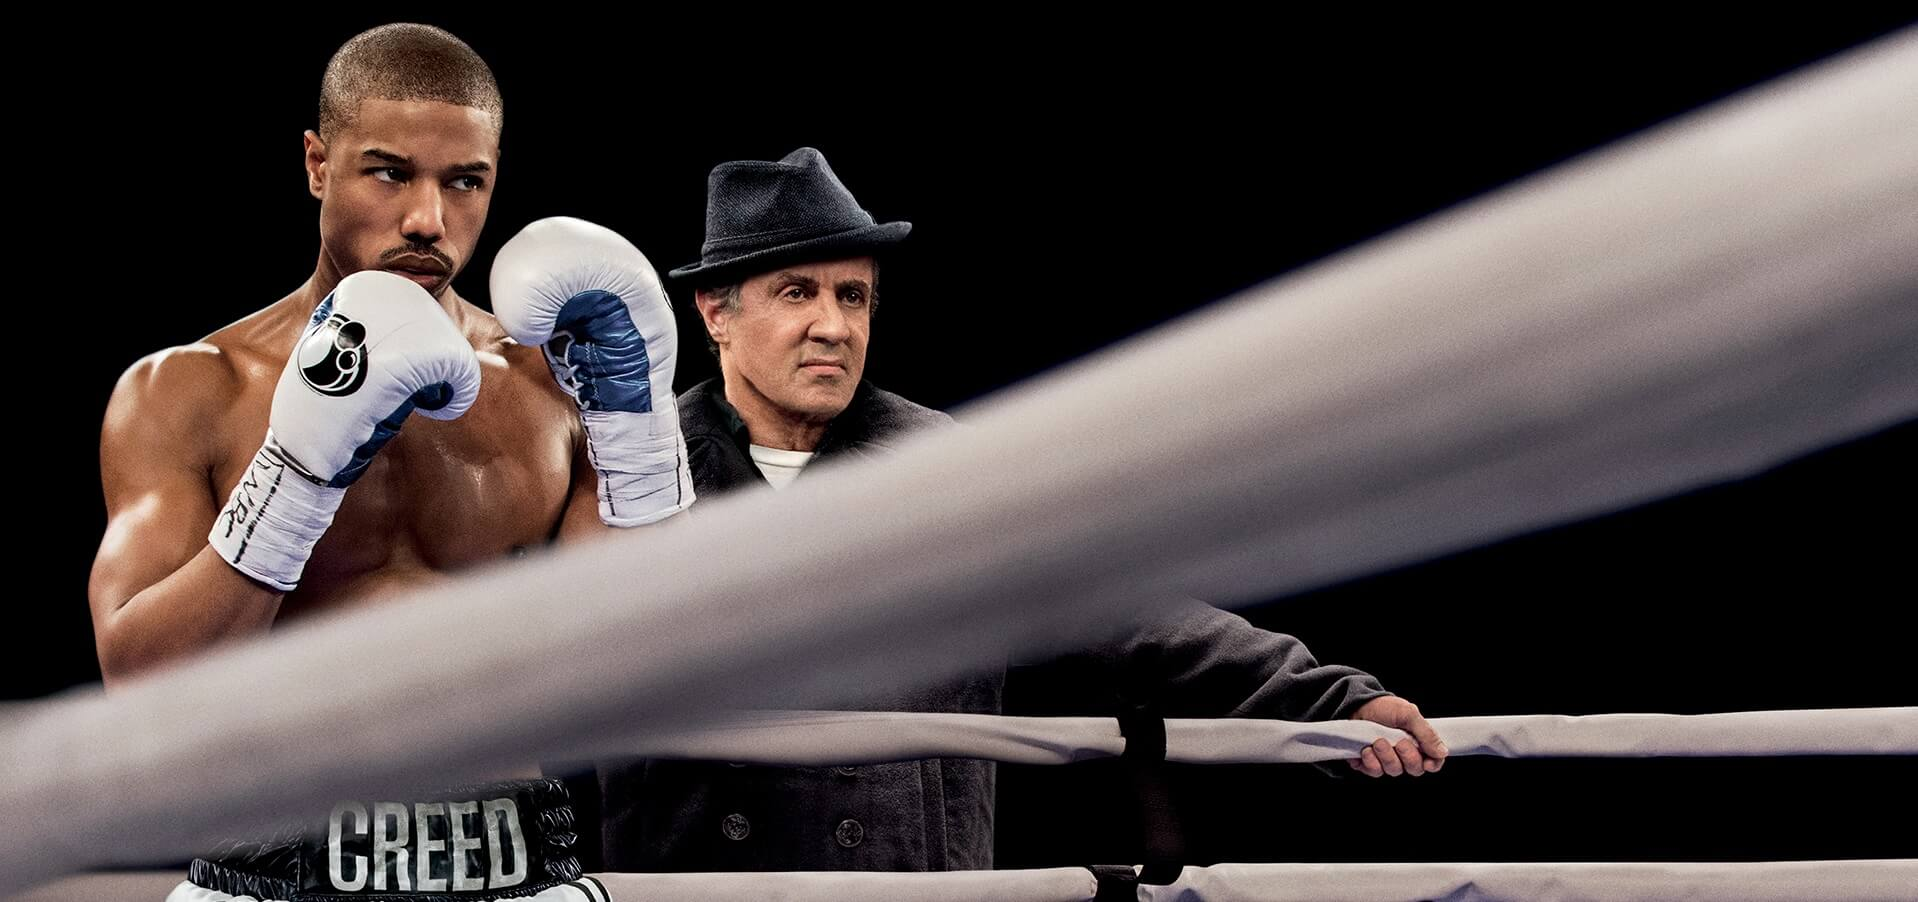 Sylvester stallone creed  1